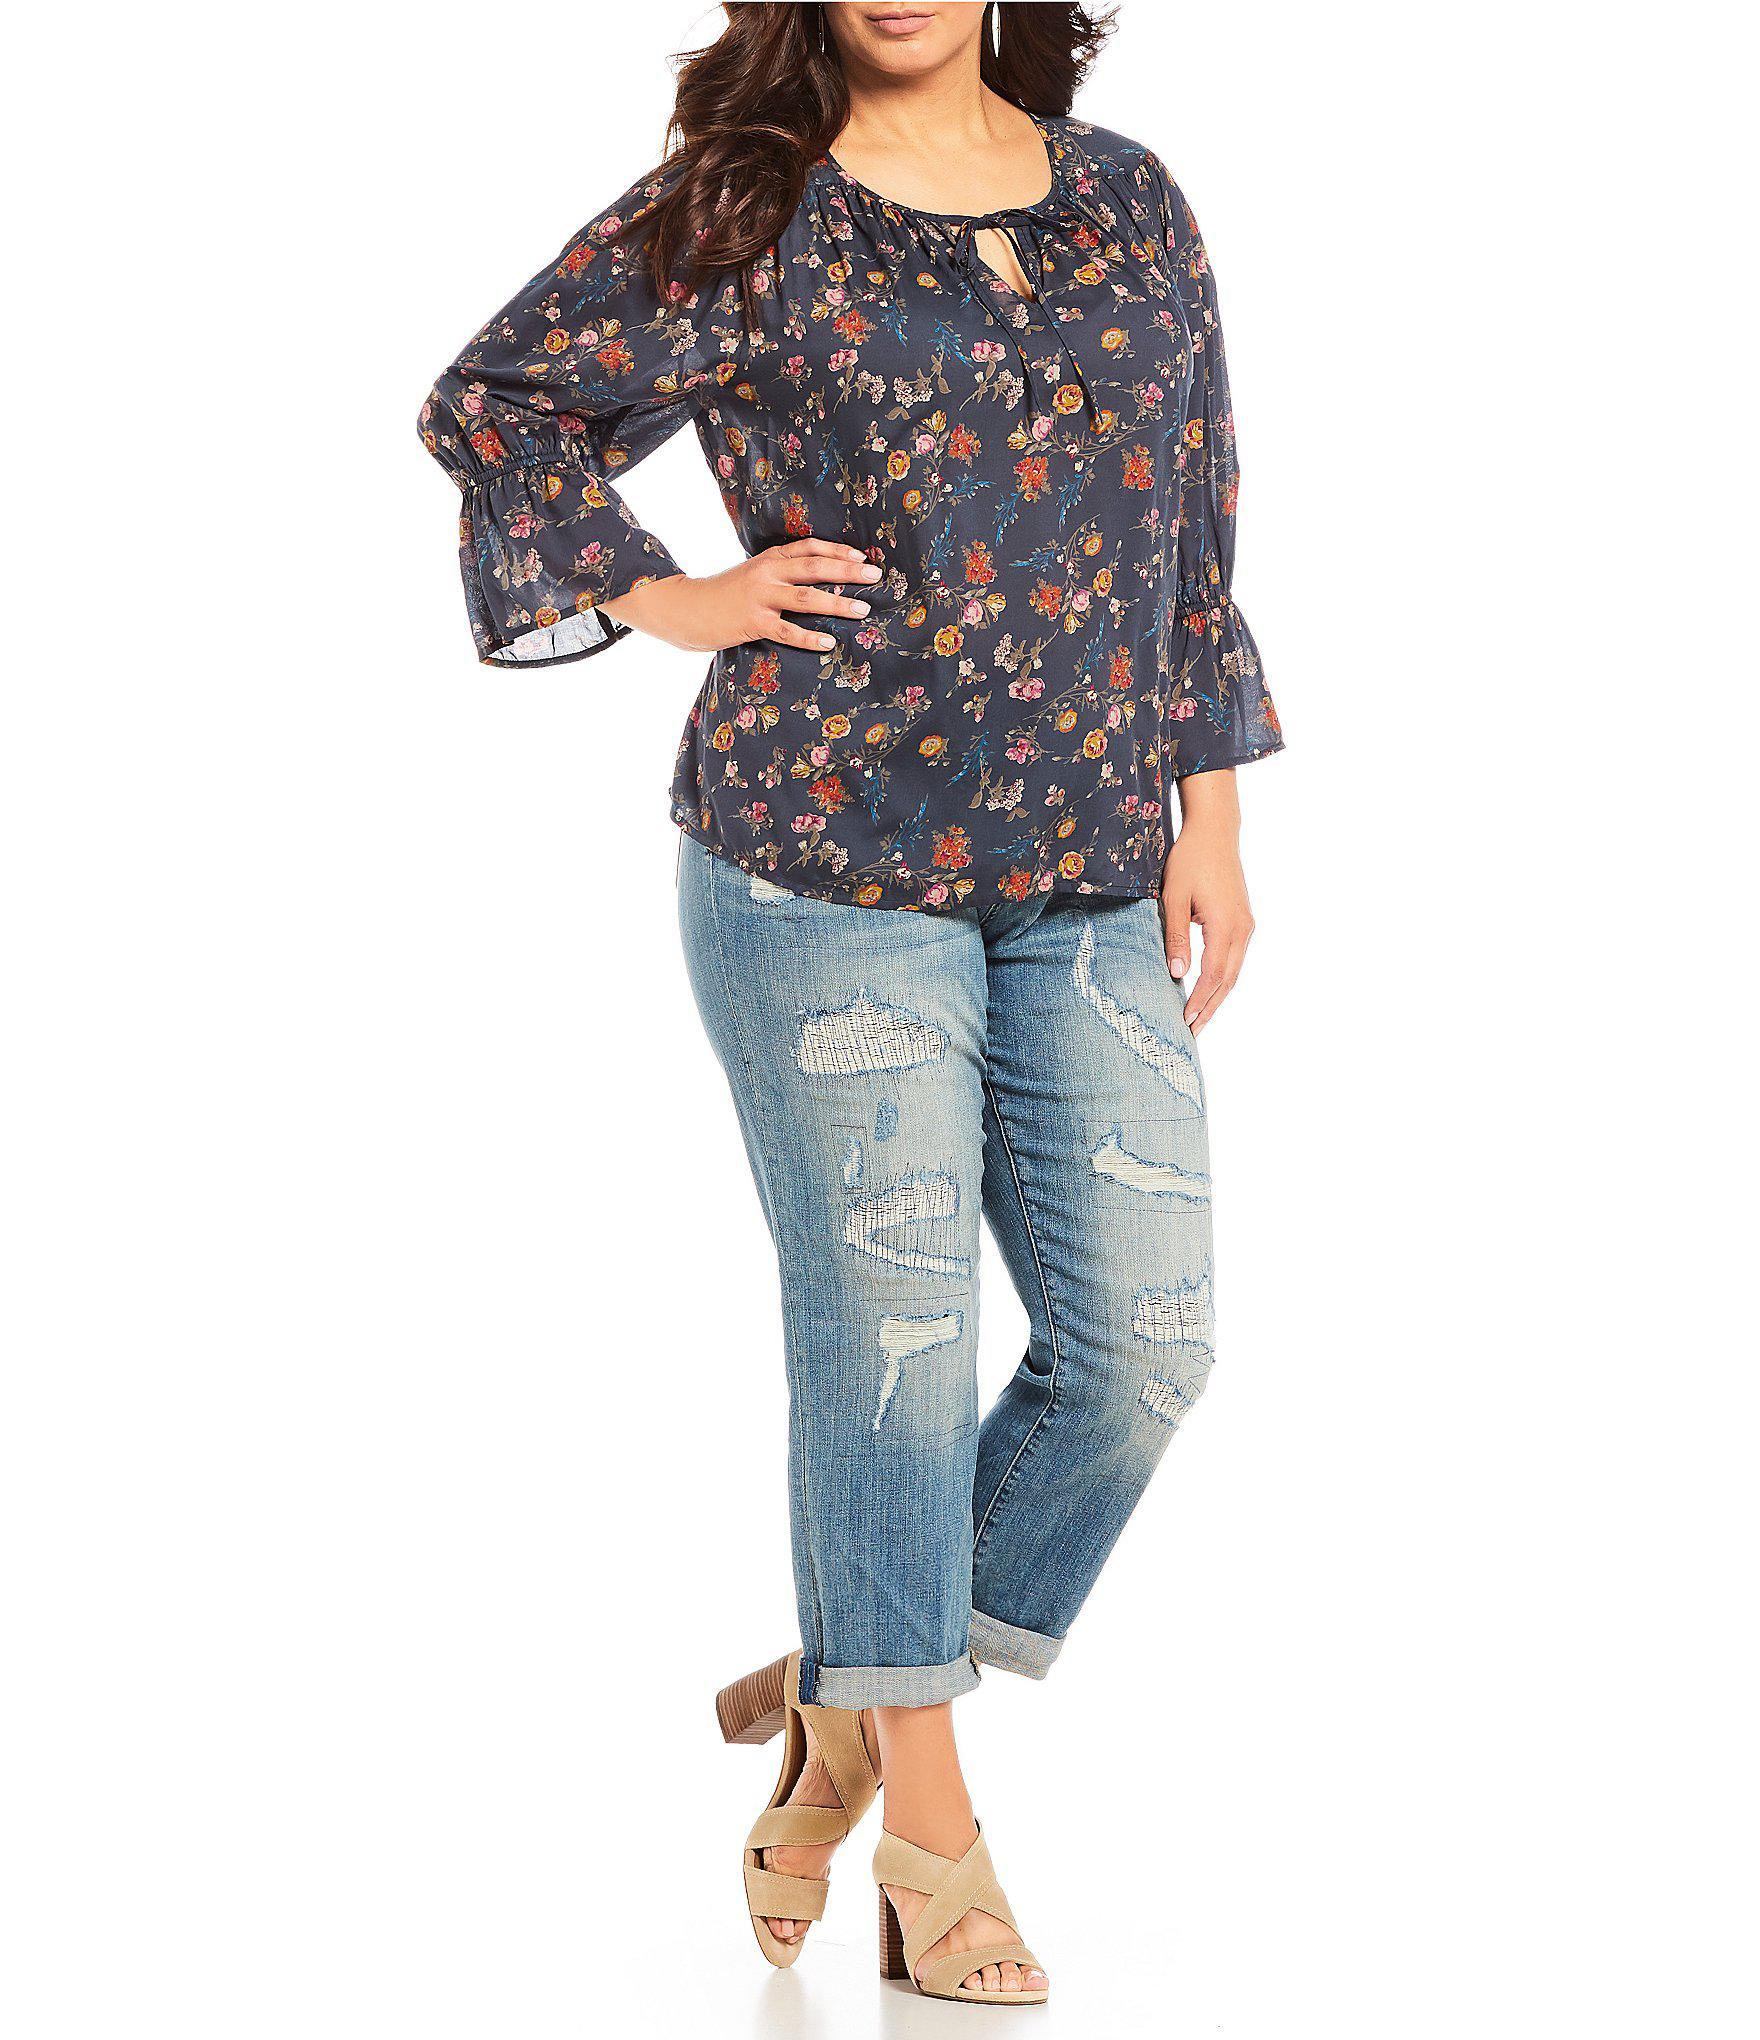 ad52274237f5 https://www.lyst.com/clothing/lucky-brand-plus-size-floral-print-tie-v ...